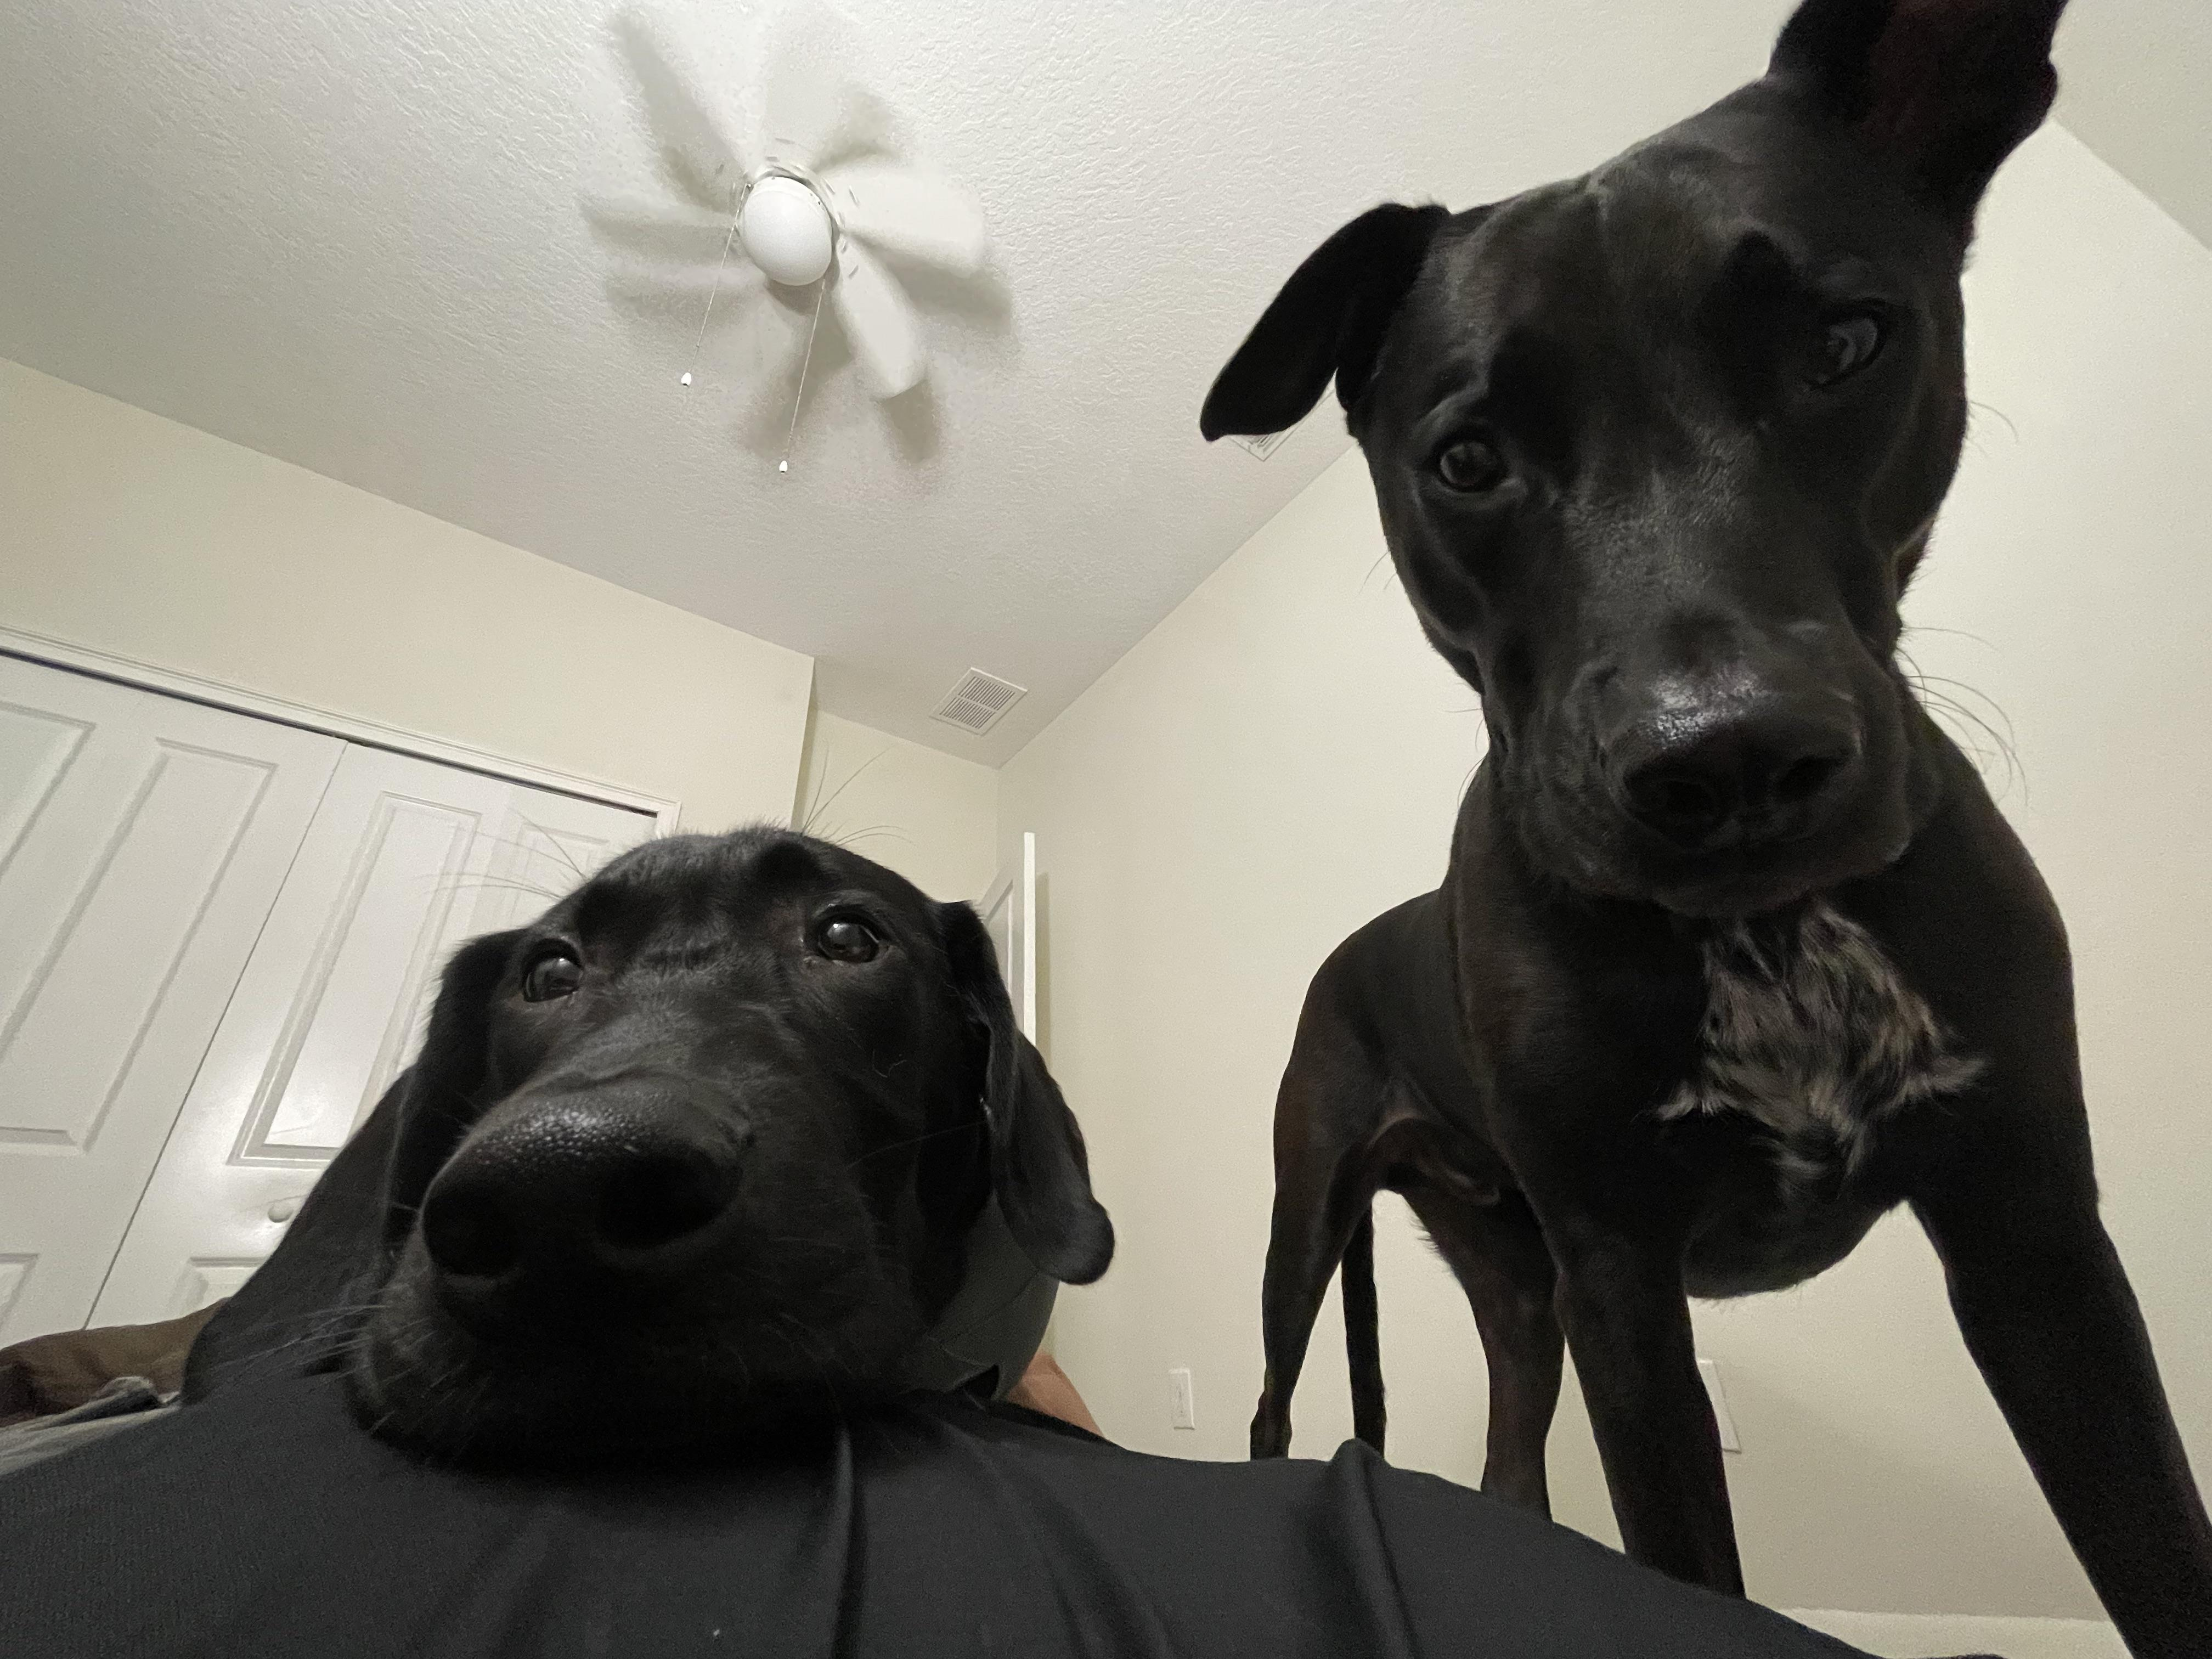 This is what I wake up to every morning. They don't even make a sound, they wake me up with sheer will